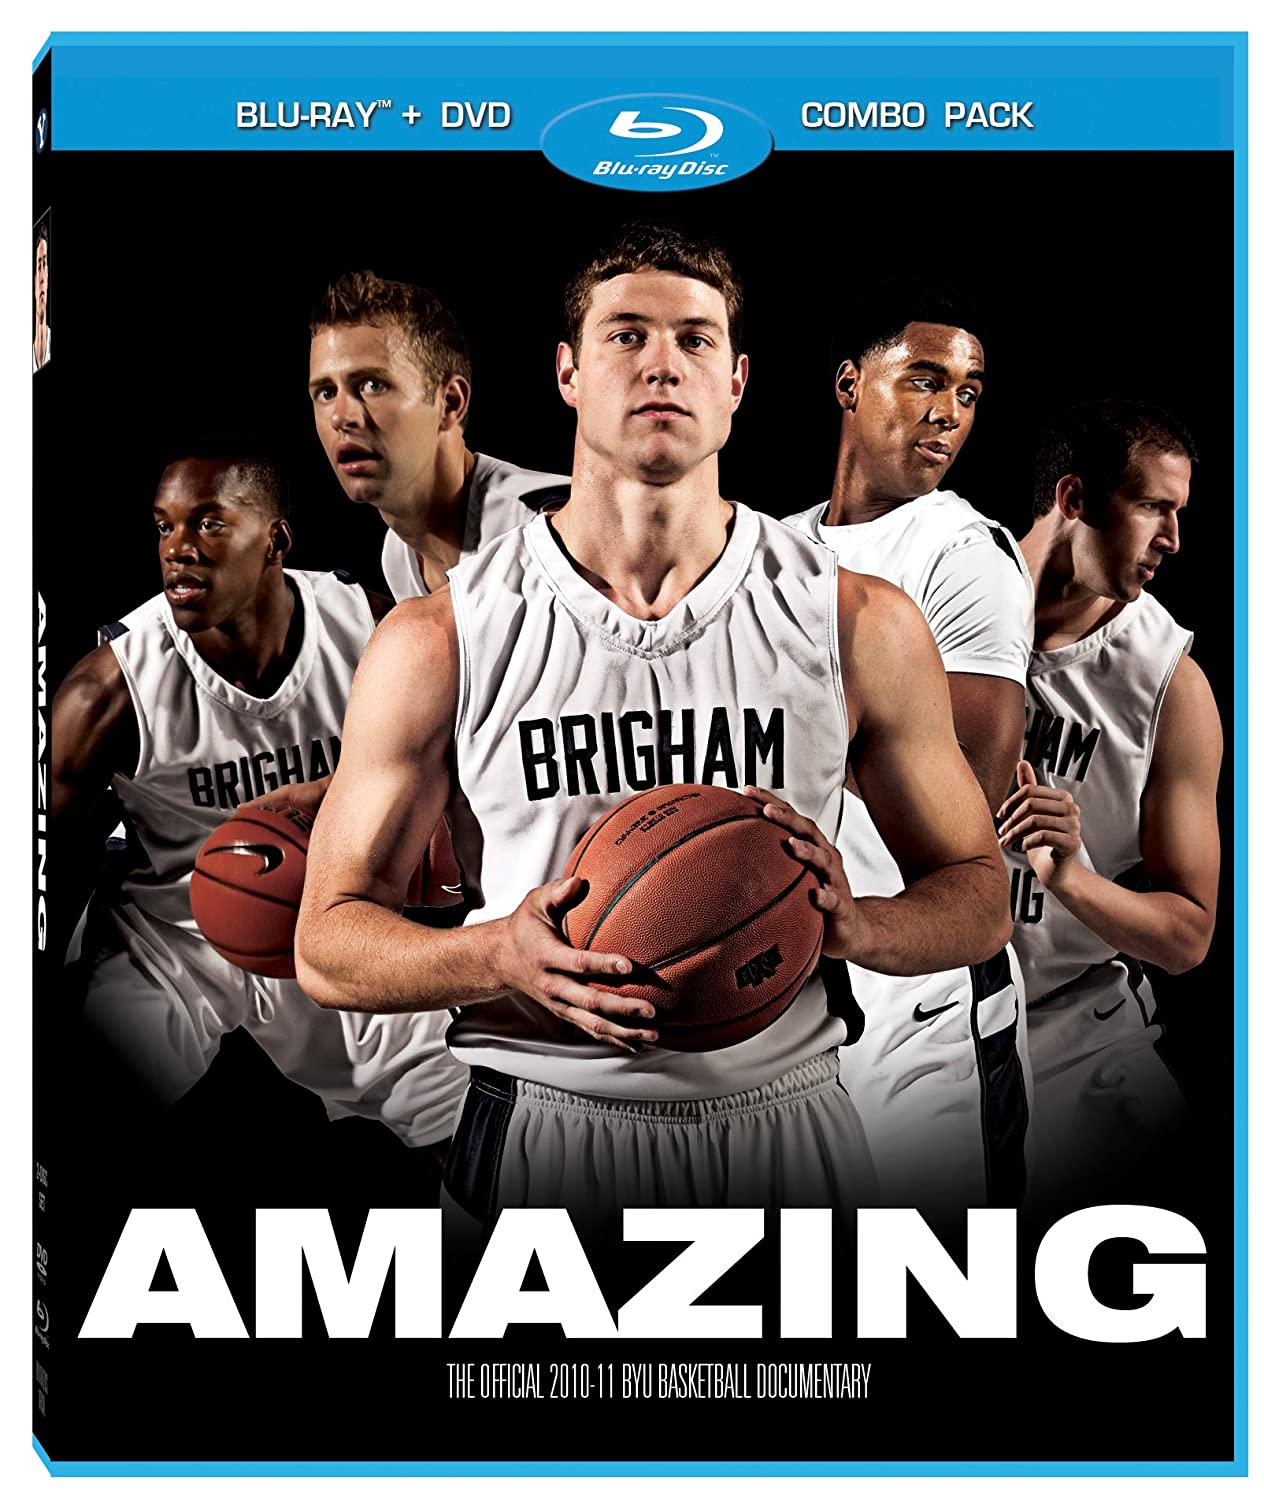 Amazon.com: Amazing: The Official 2010-11 BYU Basketball Documentary Blu-Ray/DVD Combo: Jimmer Fredette, Jackson Emery, Coach Dave Rose, Dick Vitale, ...